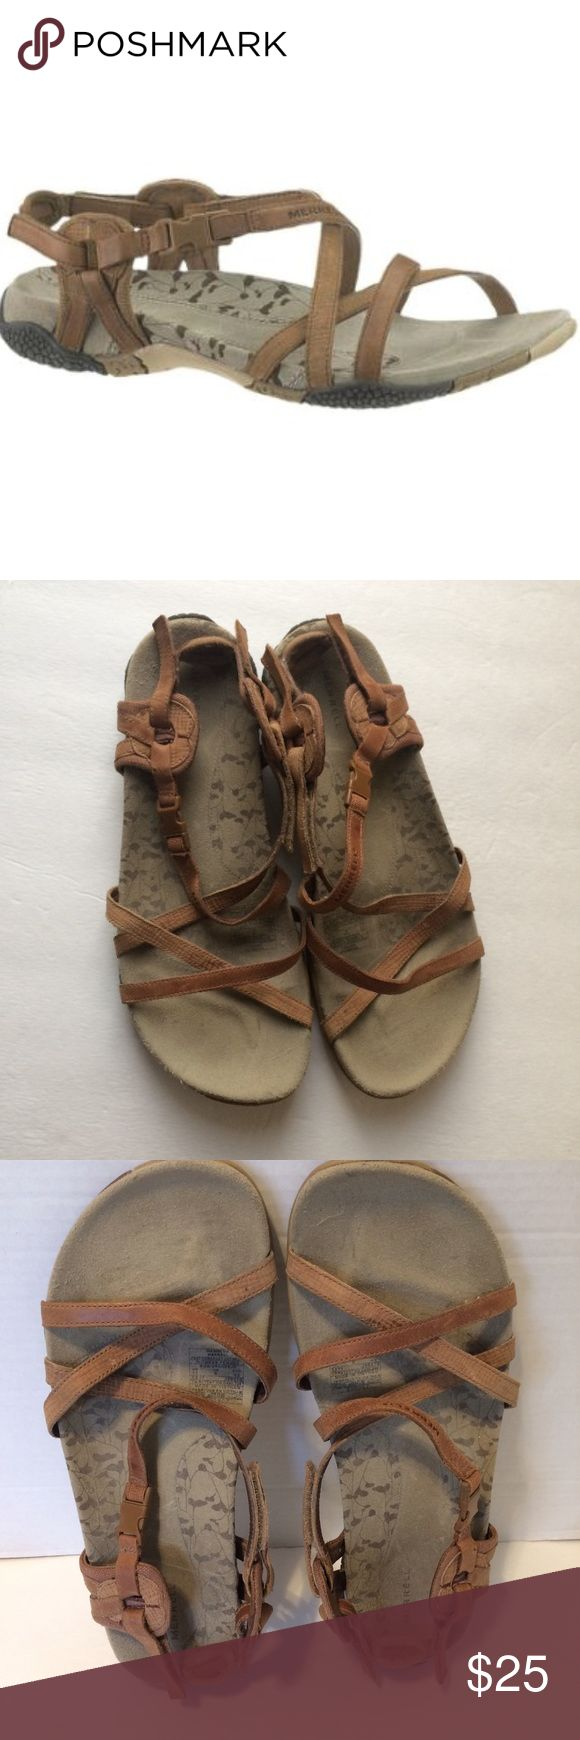 Merrell San Remo Sandal Tan strappy with Velcro closing. There is wear all over the shoes but still in really good condition. Tiny stain or two. Bottom sole in good condition as well. I would keep but too big for me. Nice & comfortable everyday Sandal. Please ask questions. Merrell Shoes Sandals